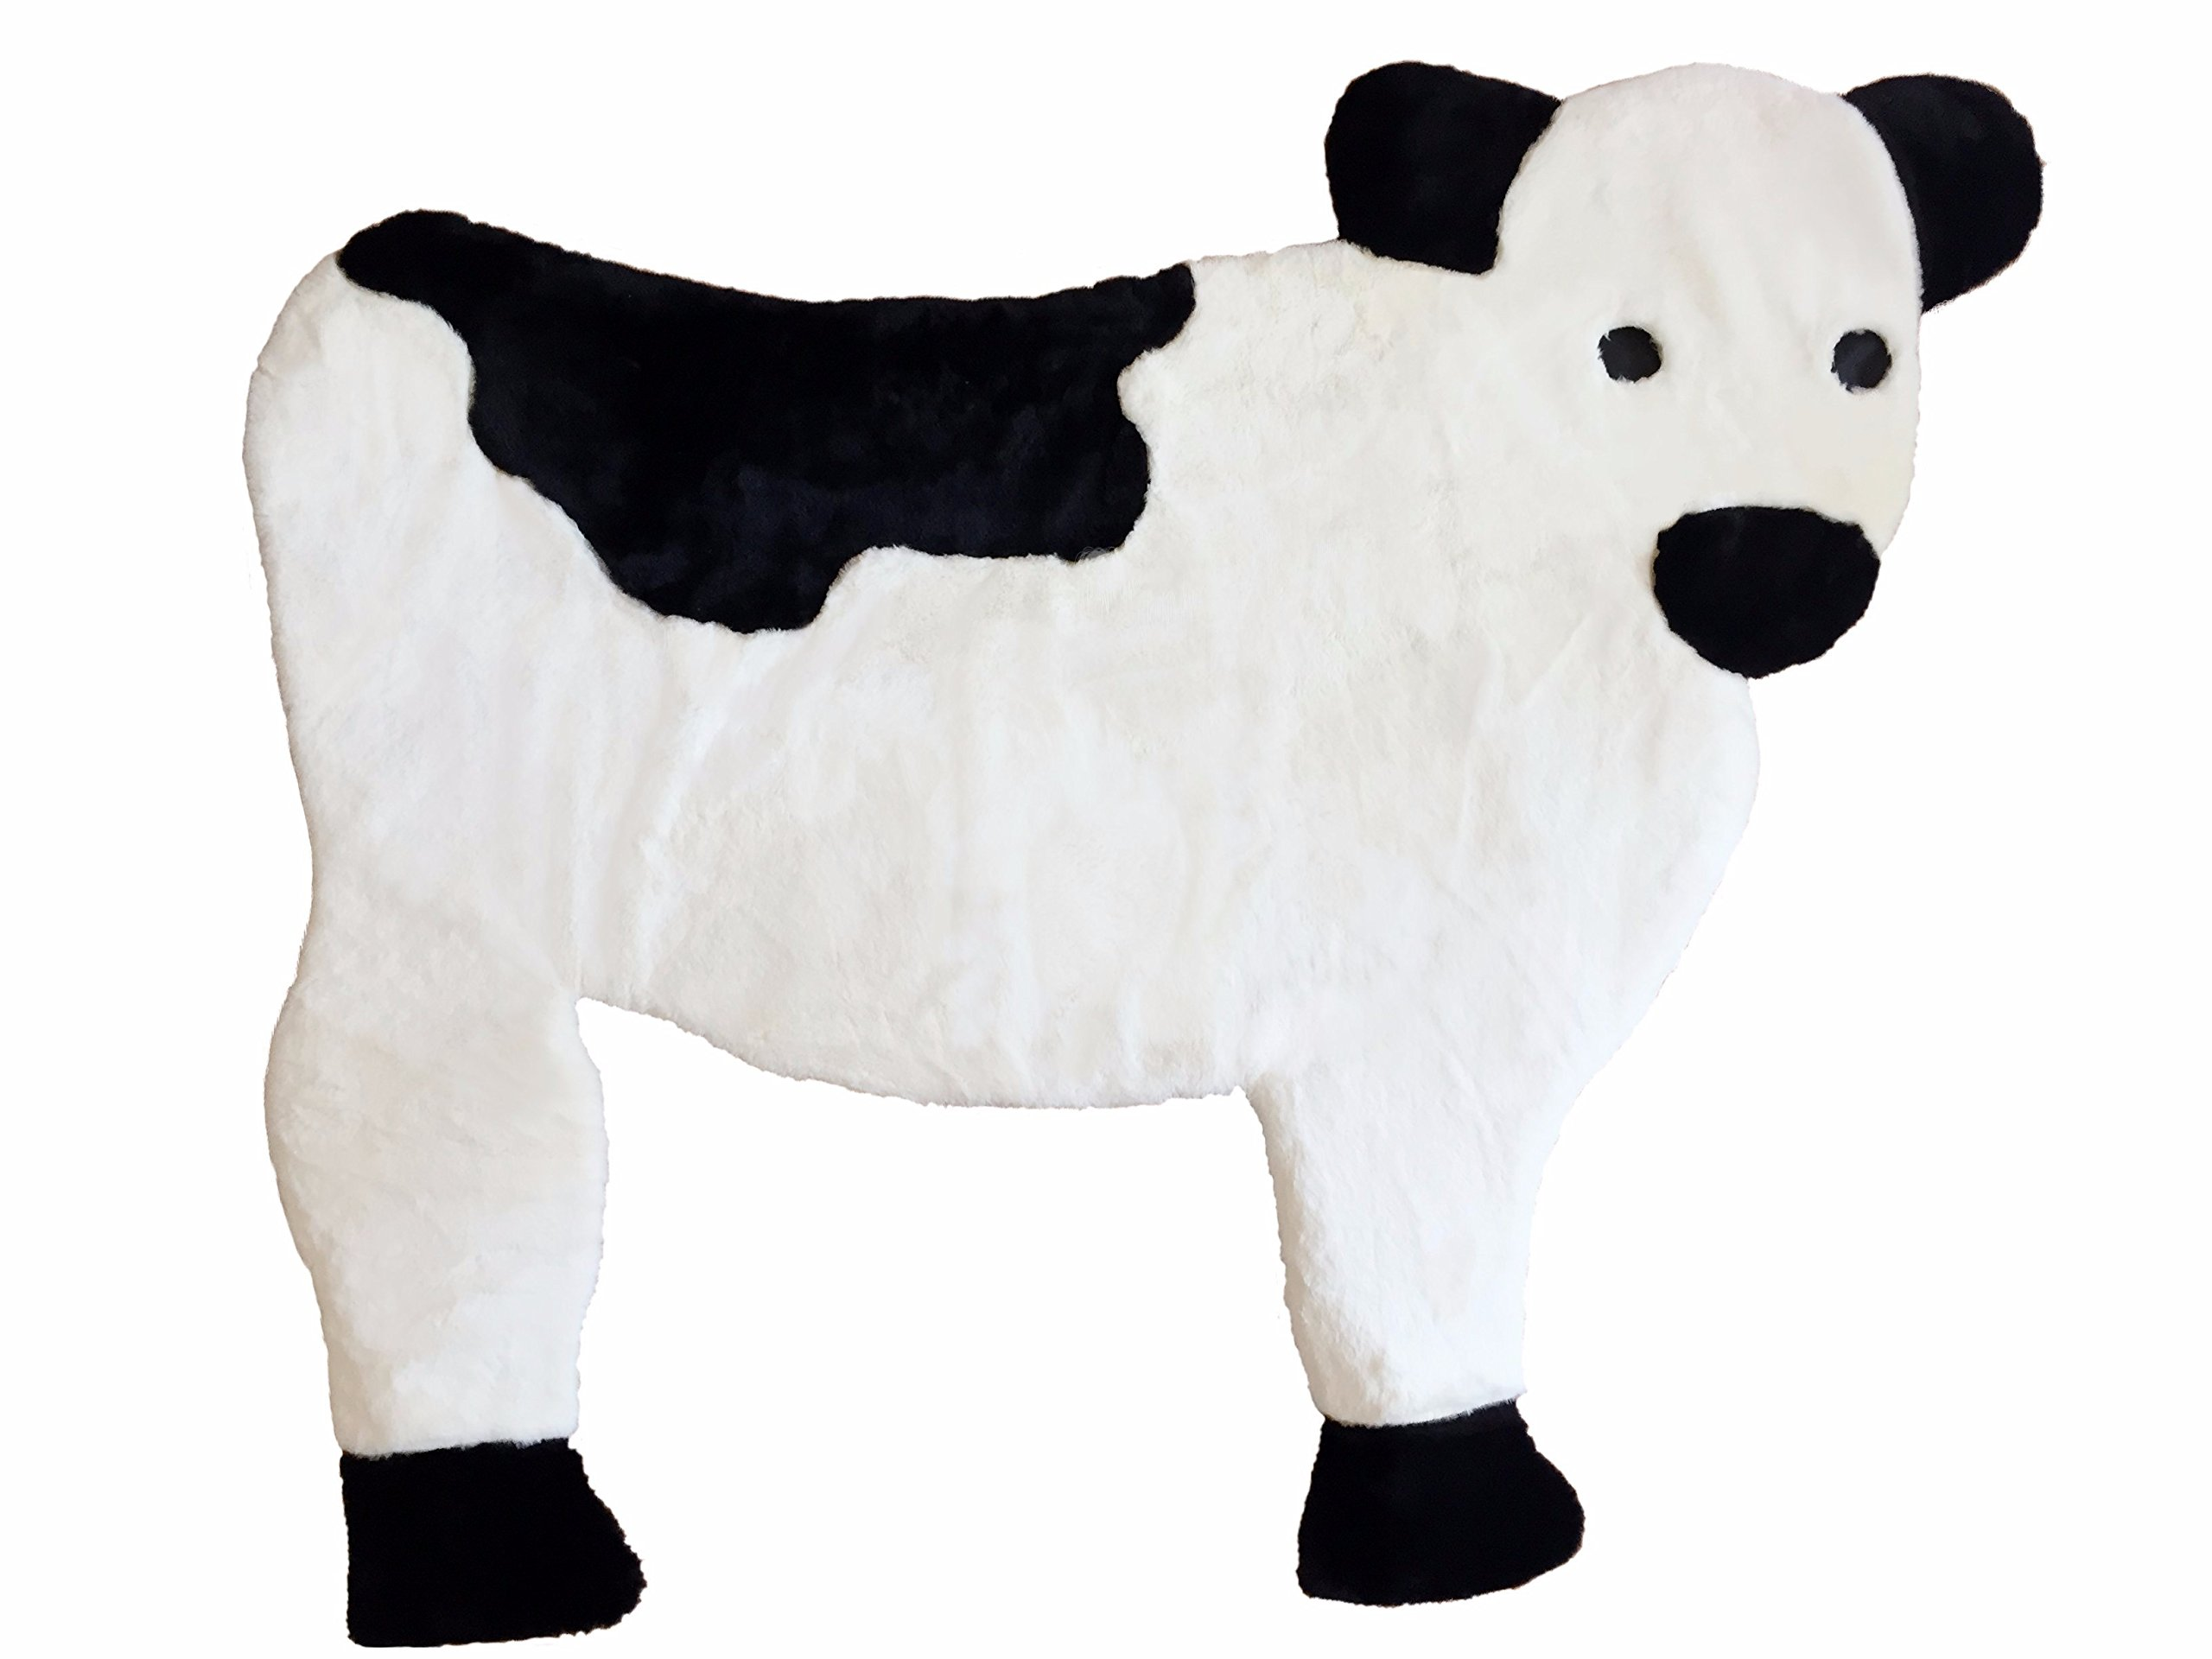 Baby Cow Nursery Rug, Play Mat, Blanket Or Bed Cover in Plush Faux Fur with Non-Slip Suede Backing